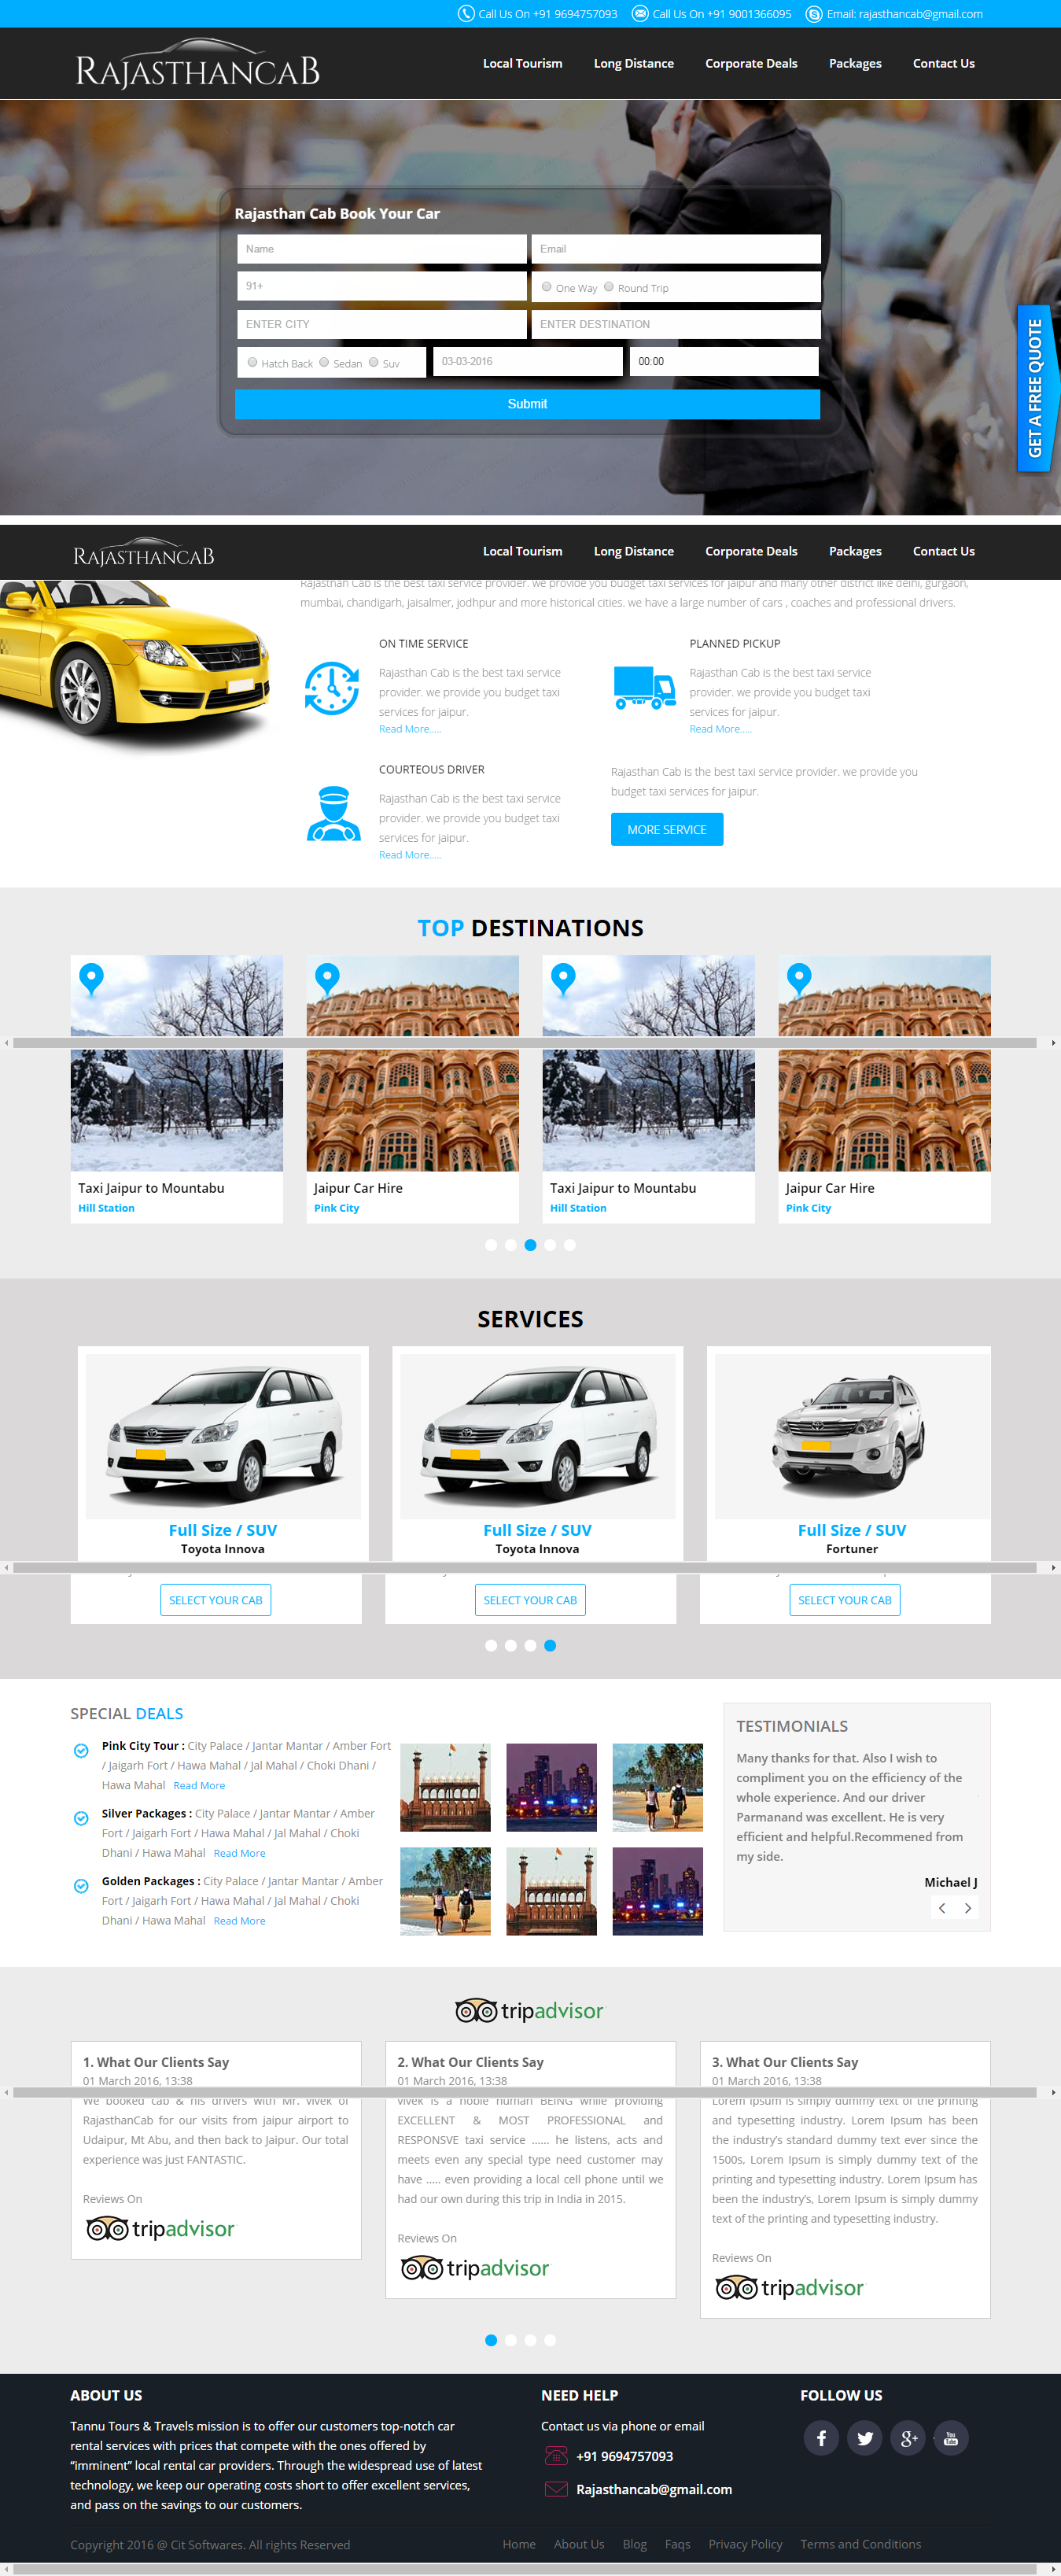 Website design and development for Rajasthancab